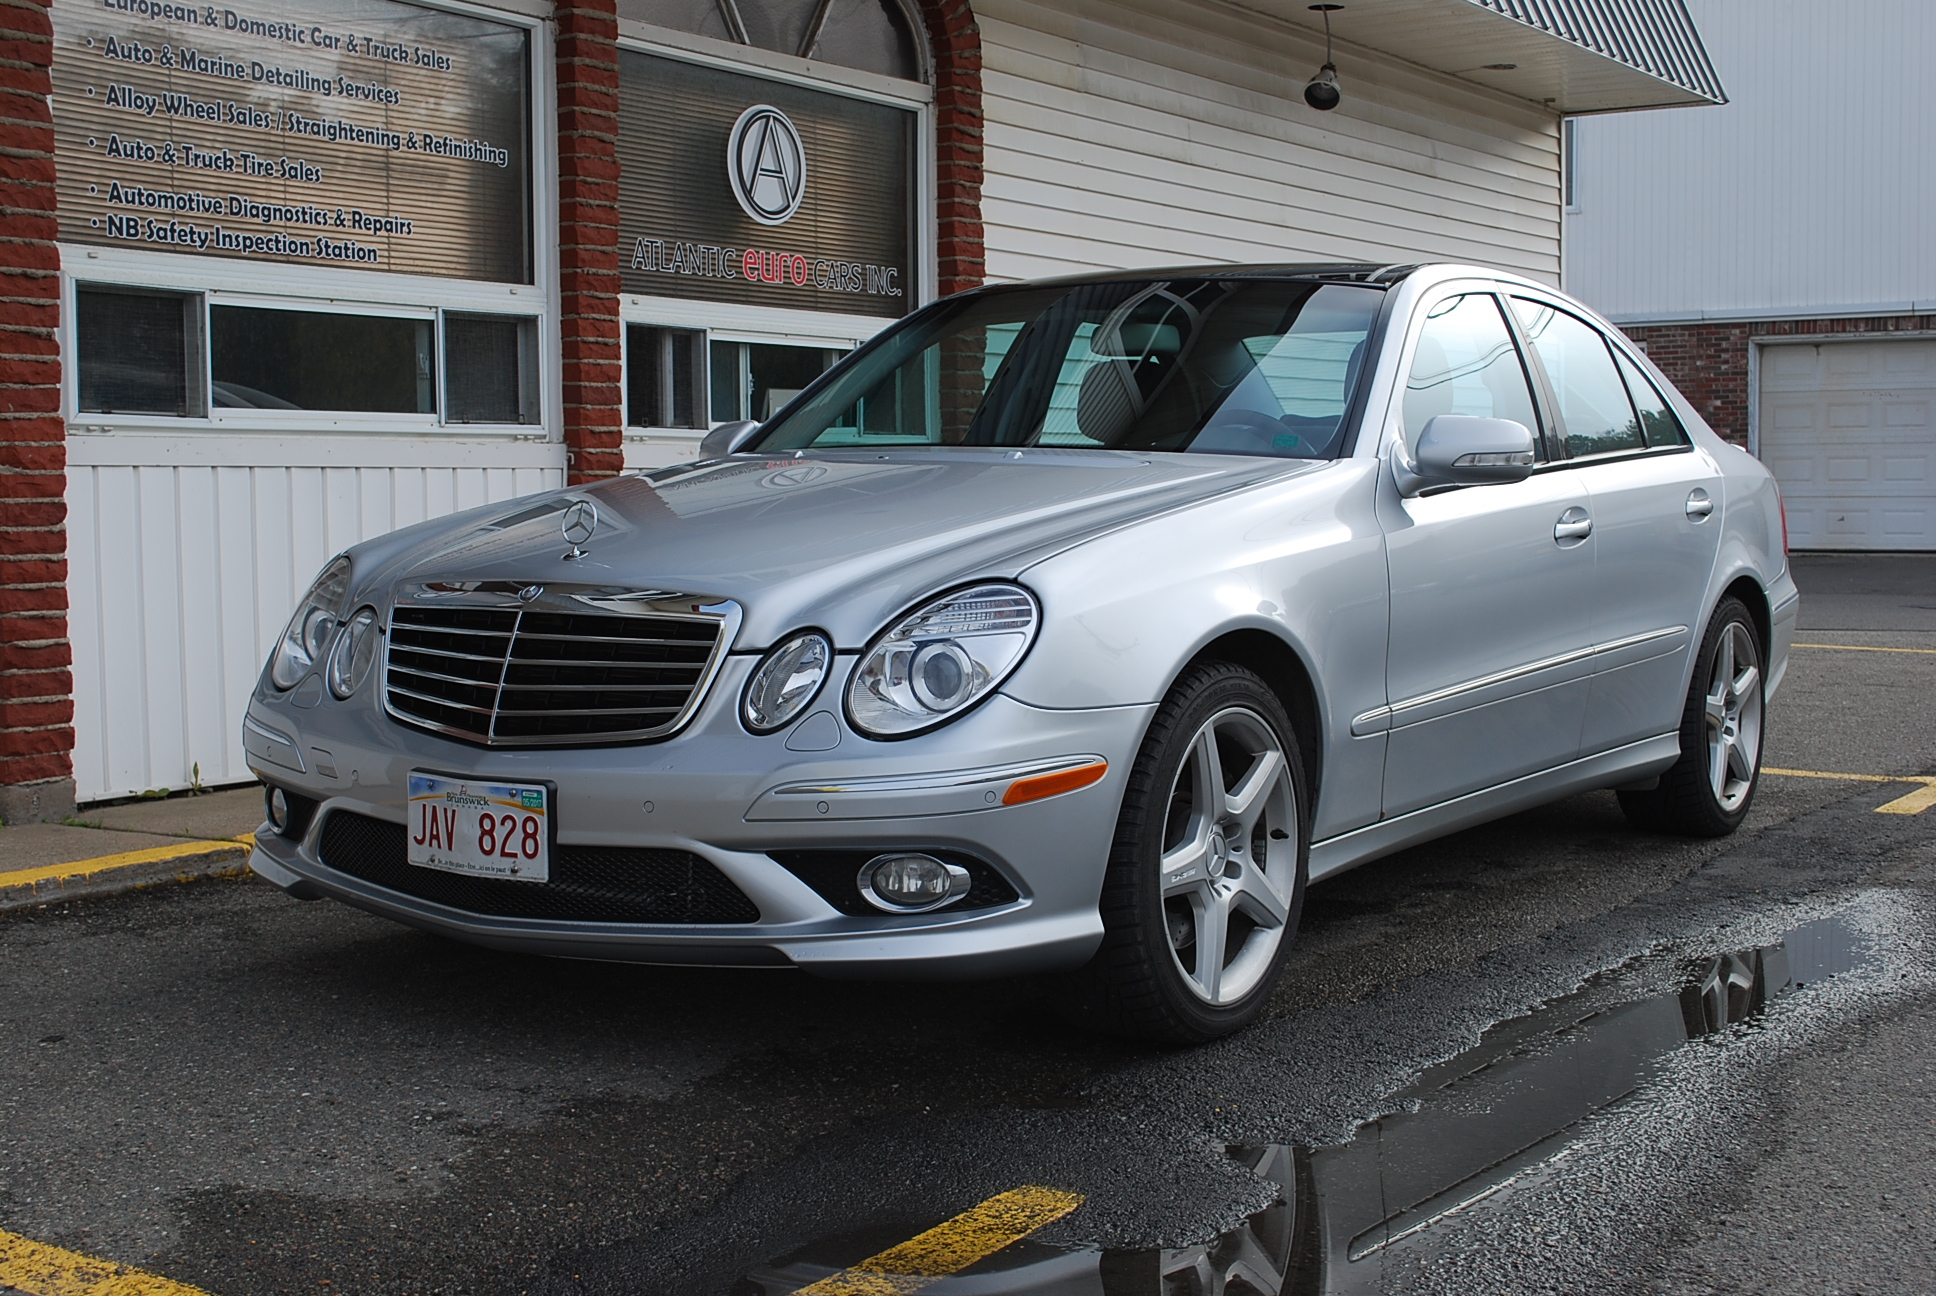 used 2008 mercedes benz e550 4matic for sale in saint john nb. Black Bedroom Furniture Sets. Home Design Ideas